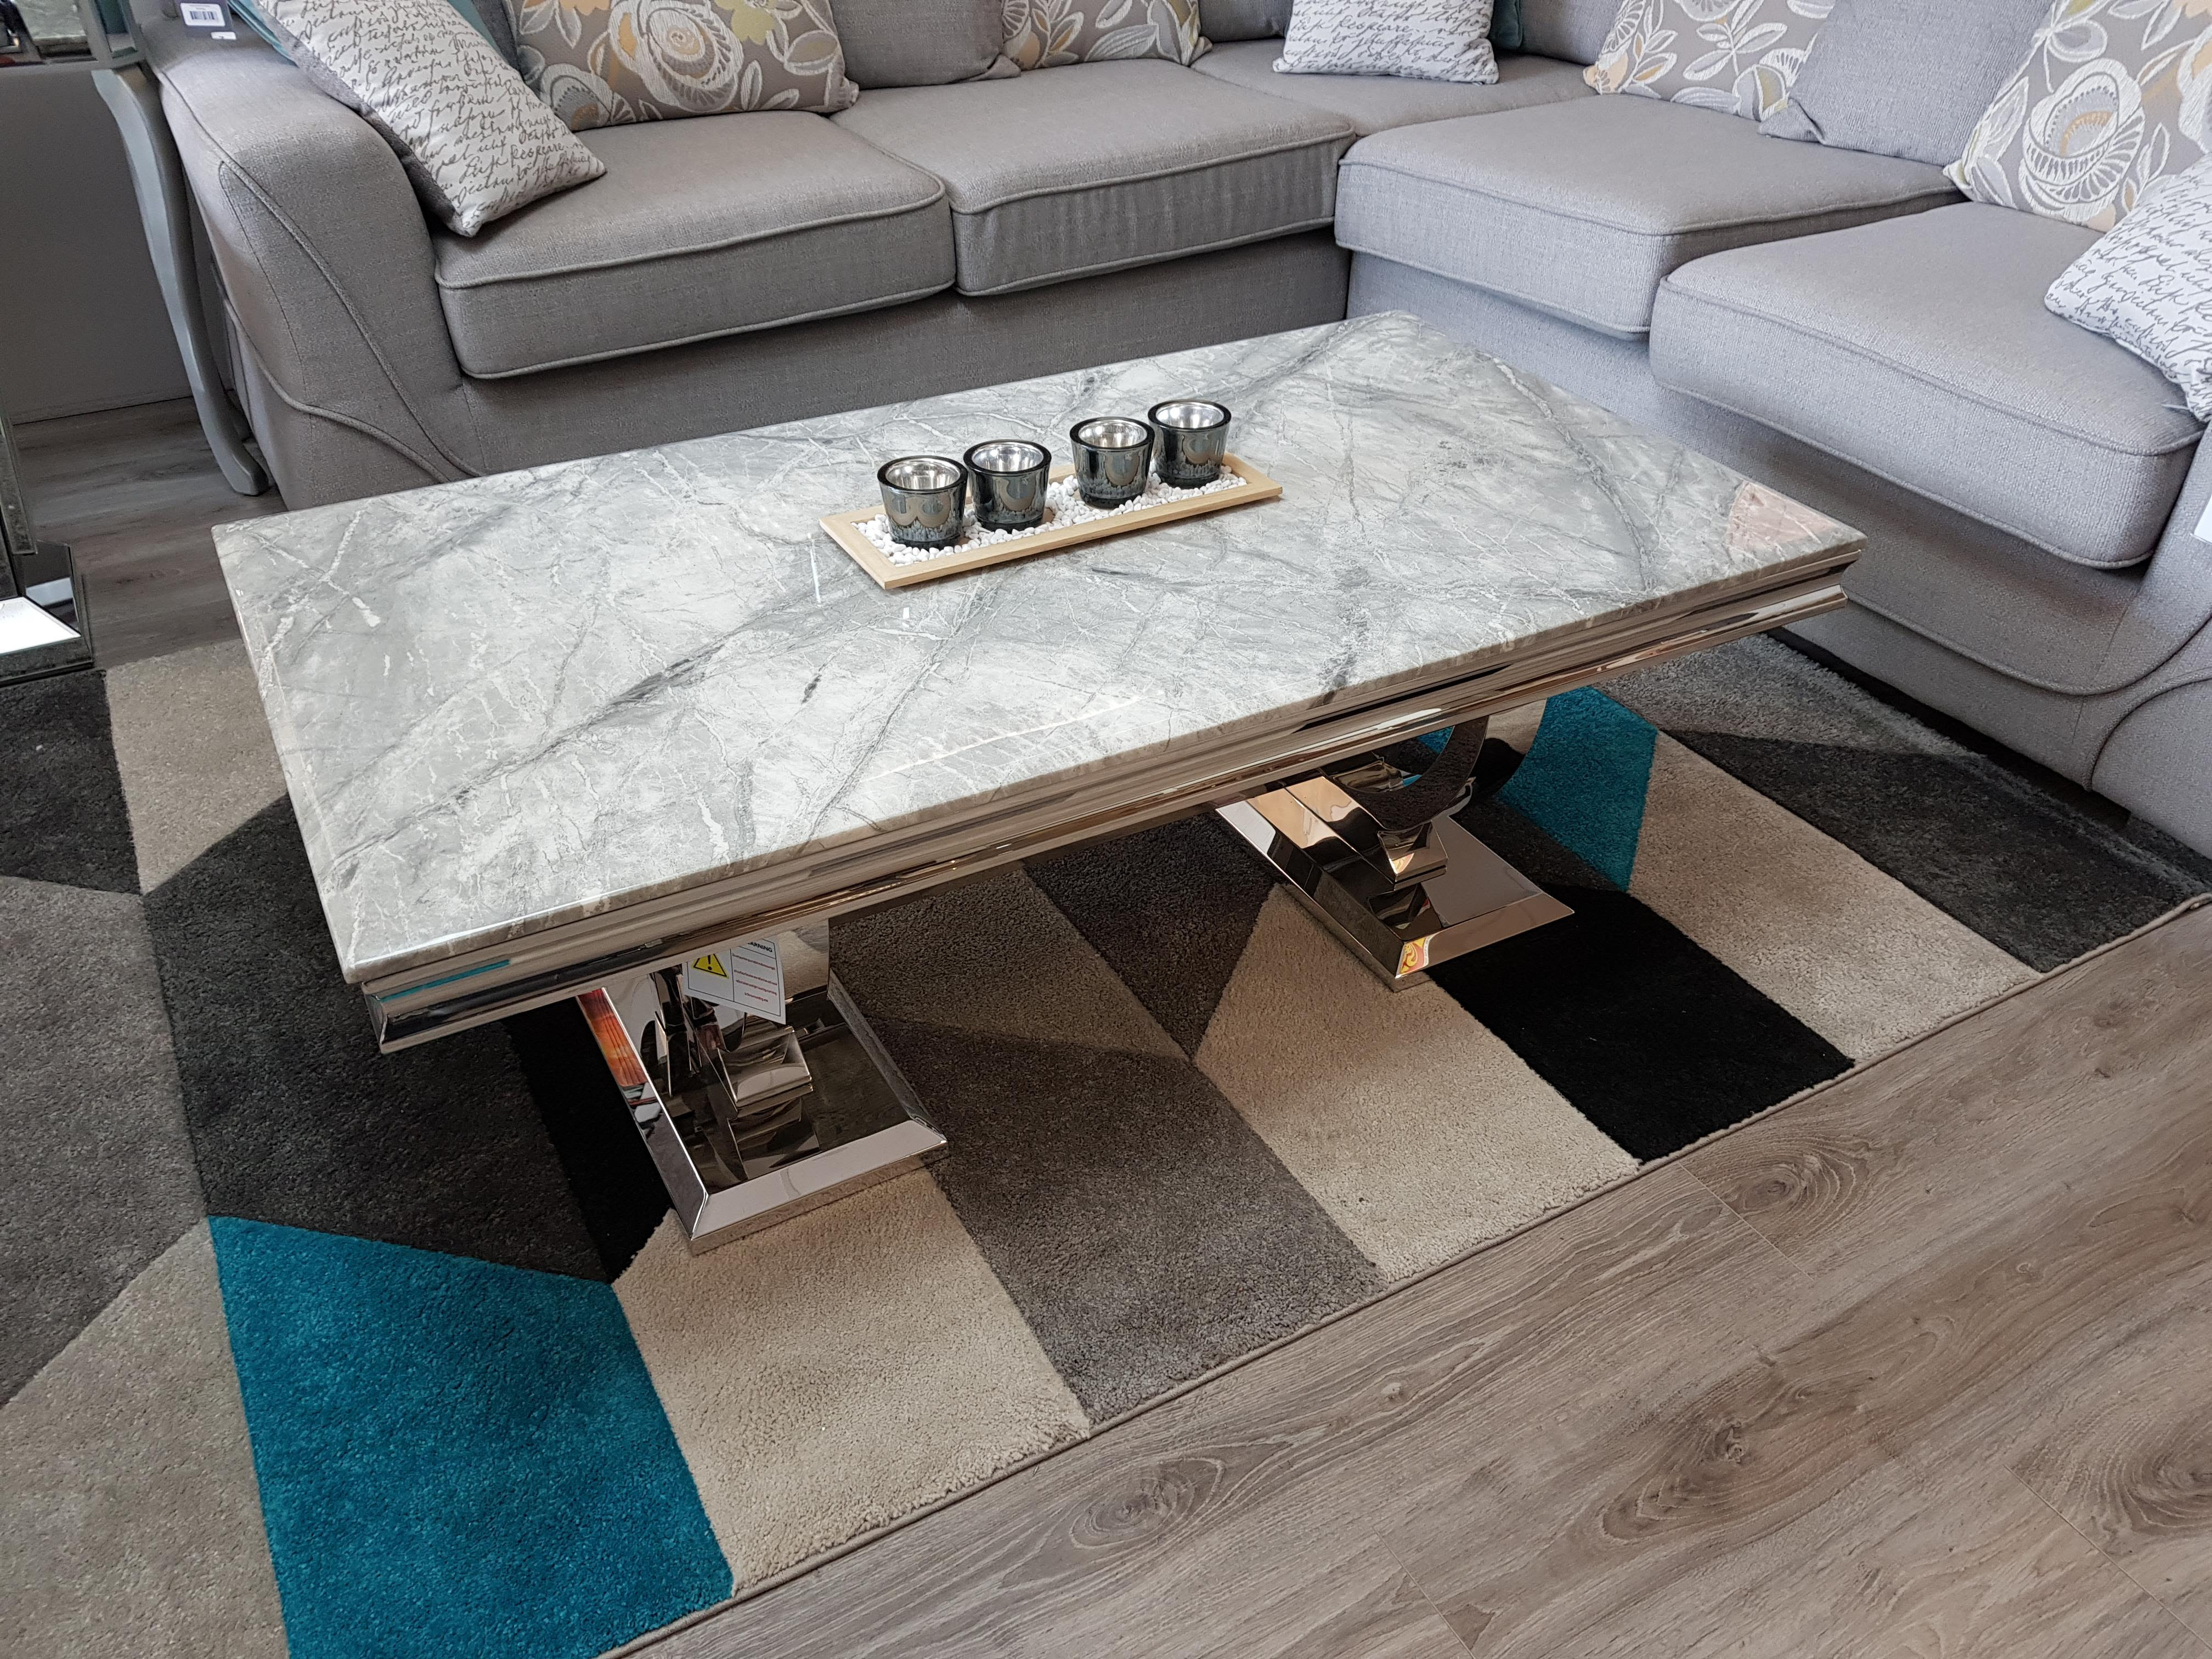 Athens Coffee Table Dublin Ireland Furniture Store Rightstyle